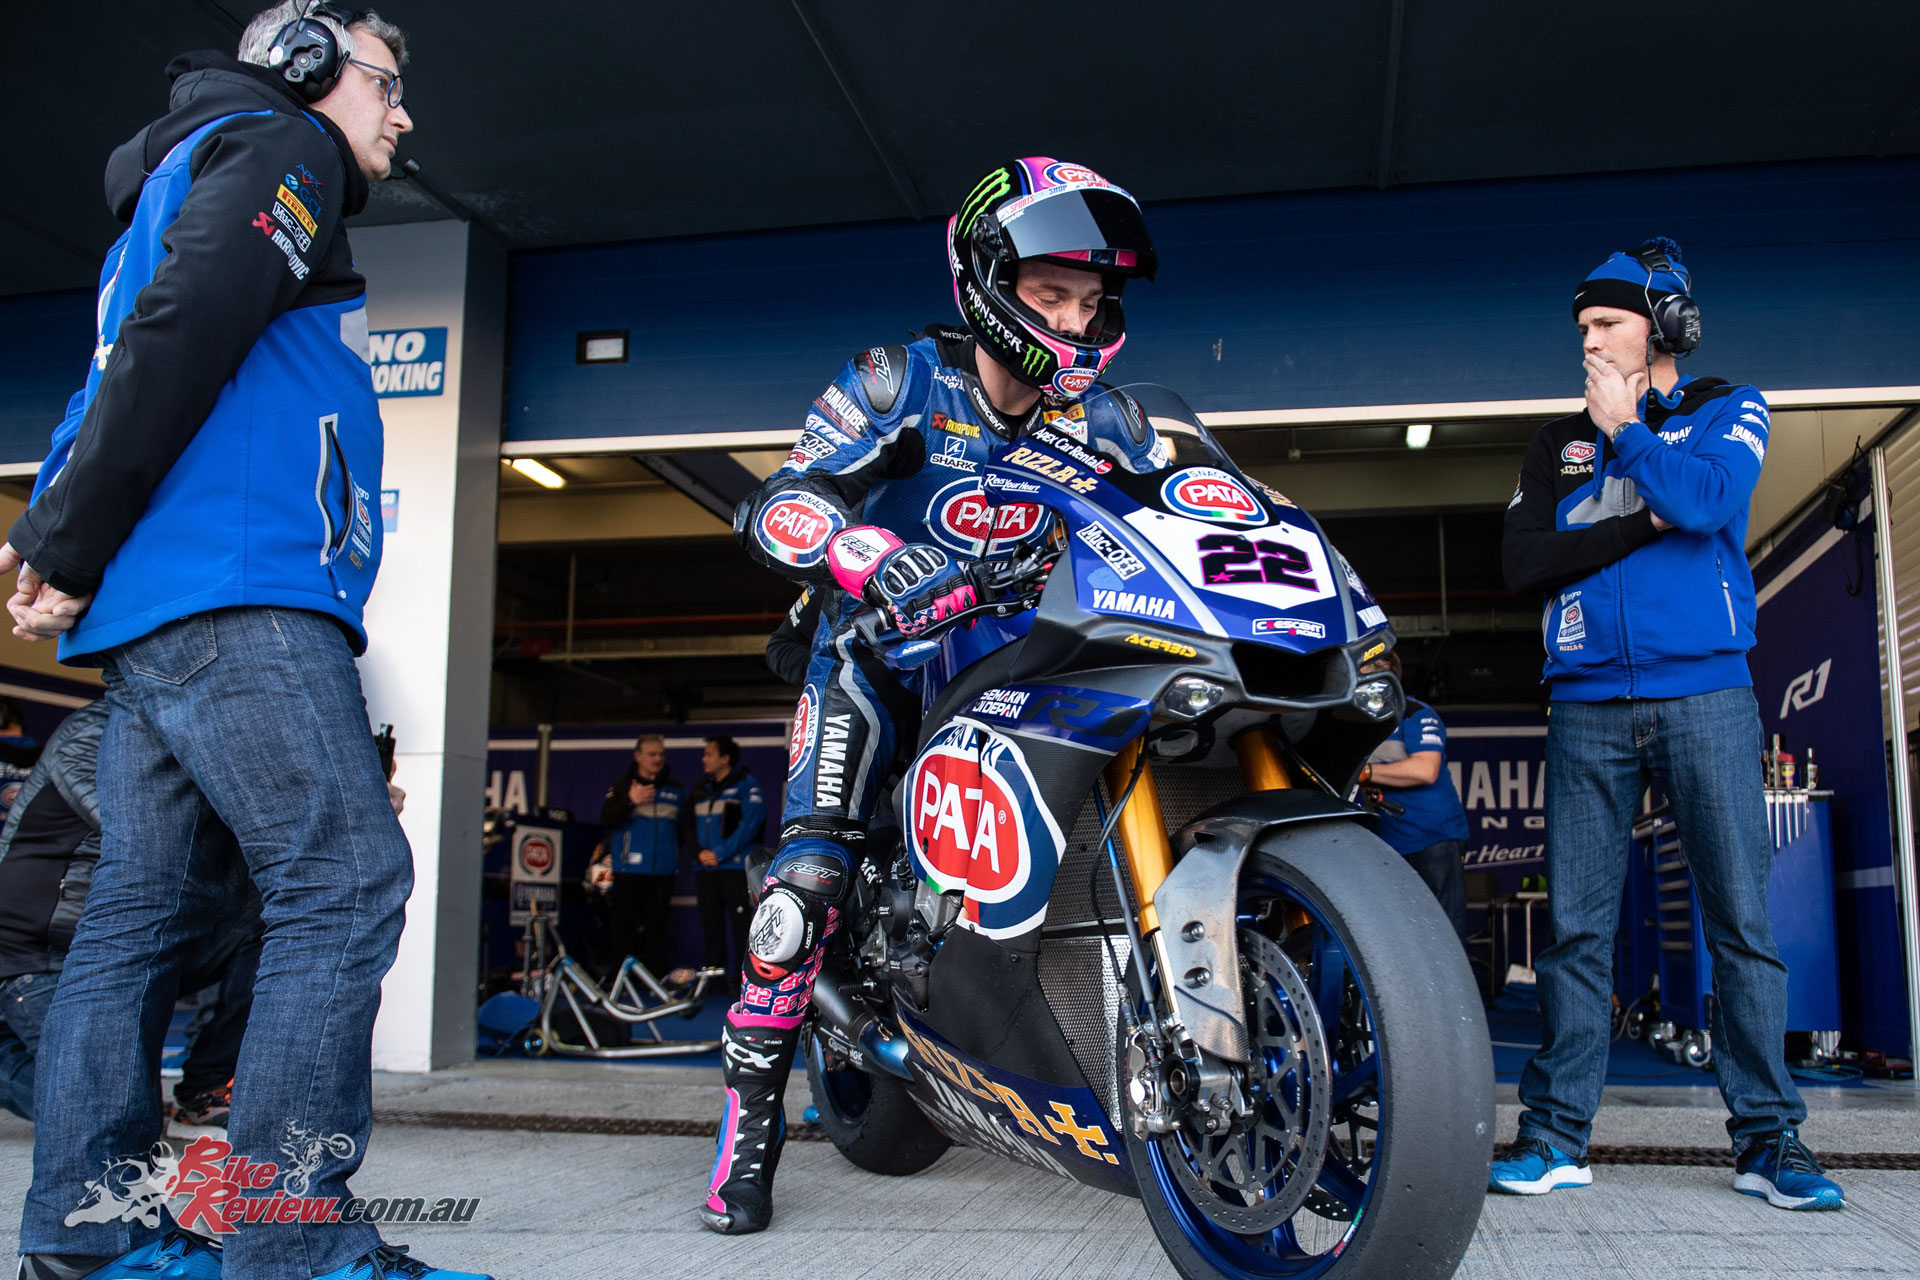 Alex Lowes at the Jerez Test